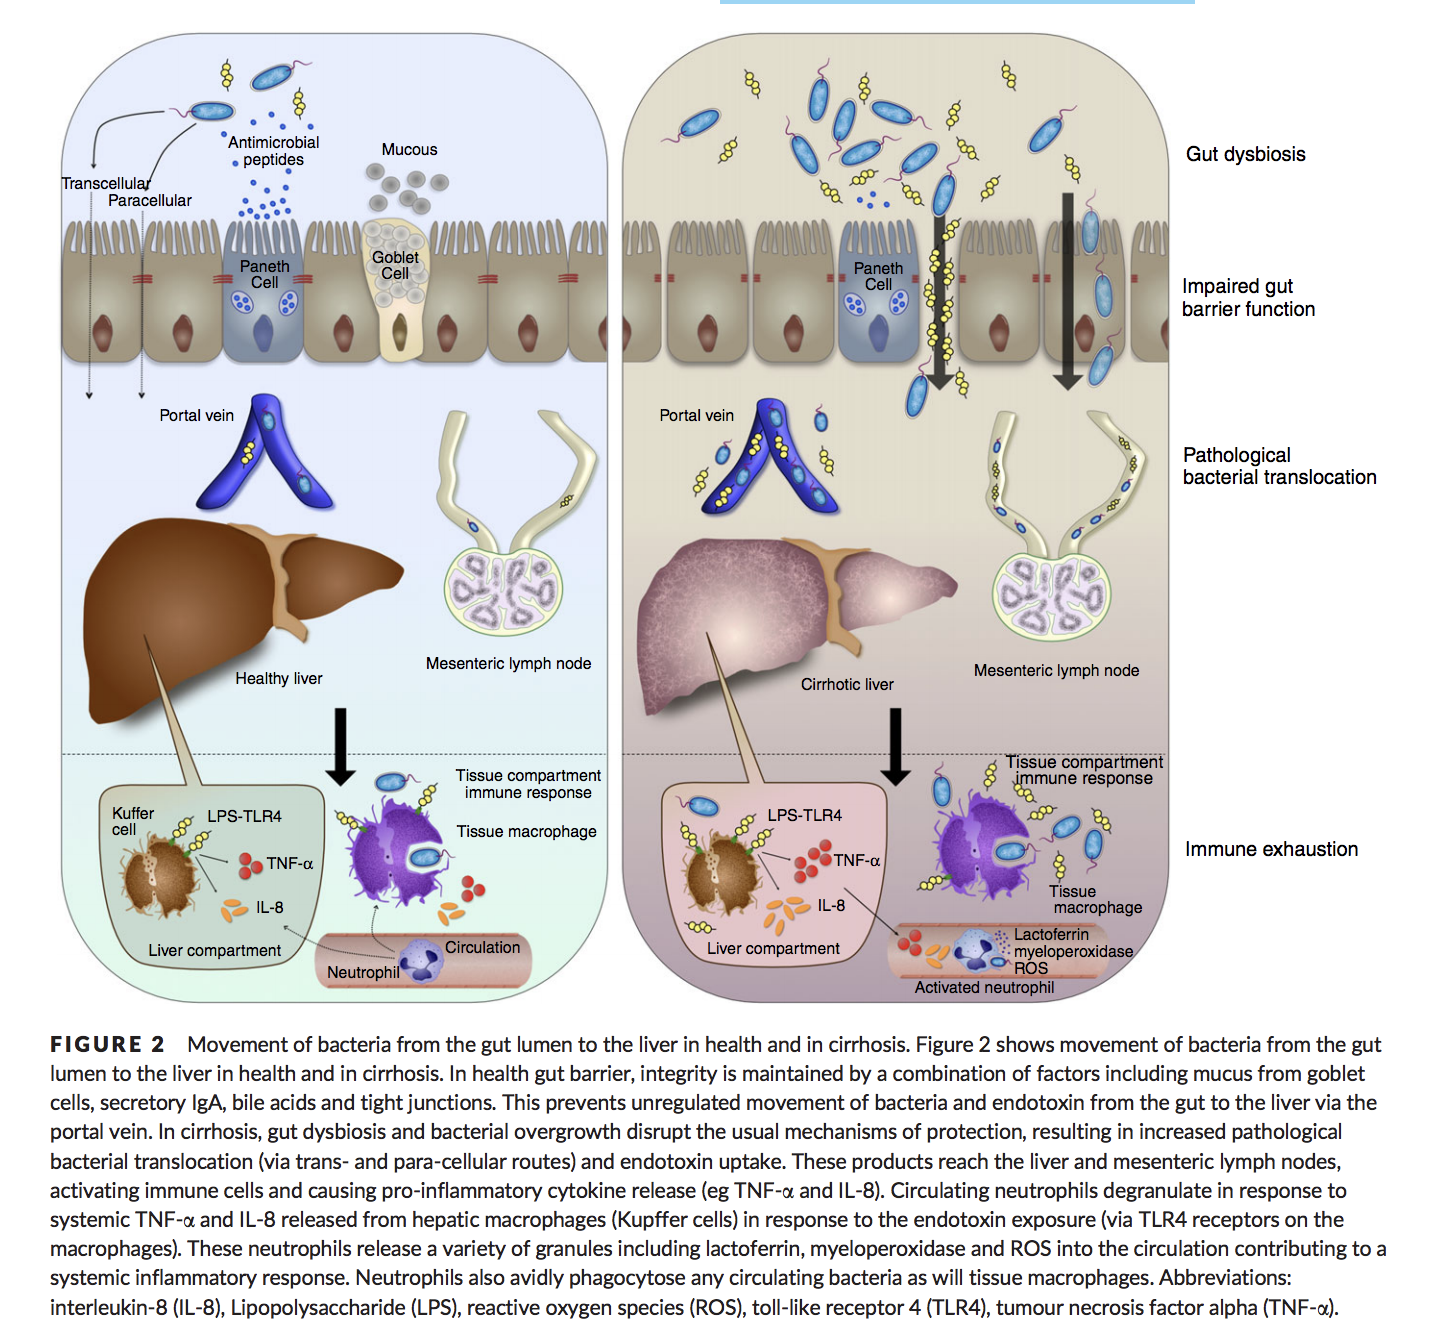 Image taken from: Review article: the gut microbiome as a therapeutic target in the pathogenesis and treatment of chronic liver disease showing a healthy gut on the left and a dysbiotic gut on the right and their association with inflammation, liver function and damage.